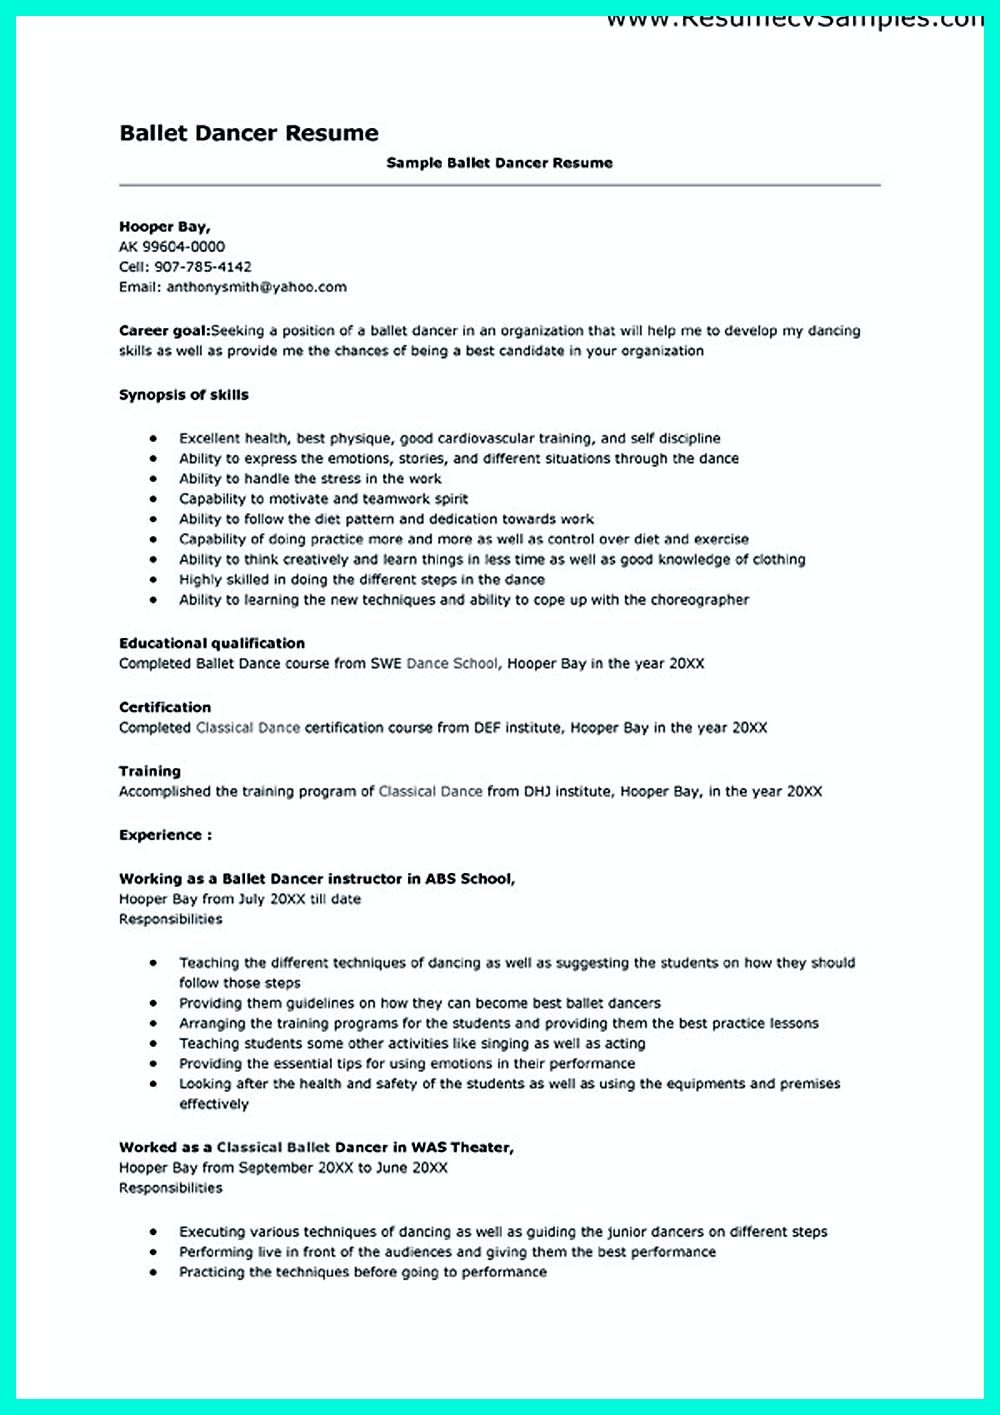 Dance Resume Can Be Used For Both Novice And Professional Dancer Most Job Of Dancer Has Minimum Requirem Teacher Resume Template Resume Template Acting Resume